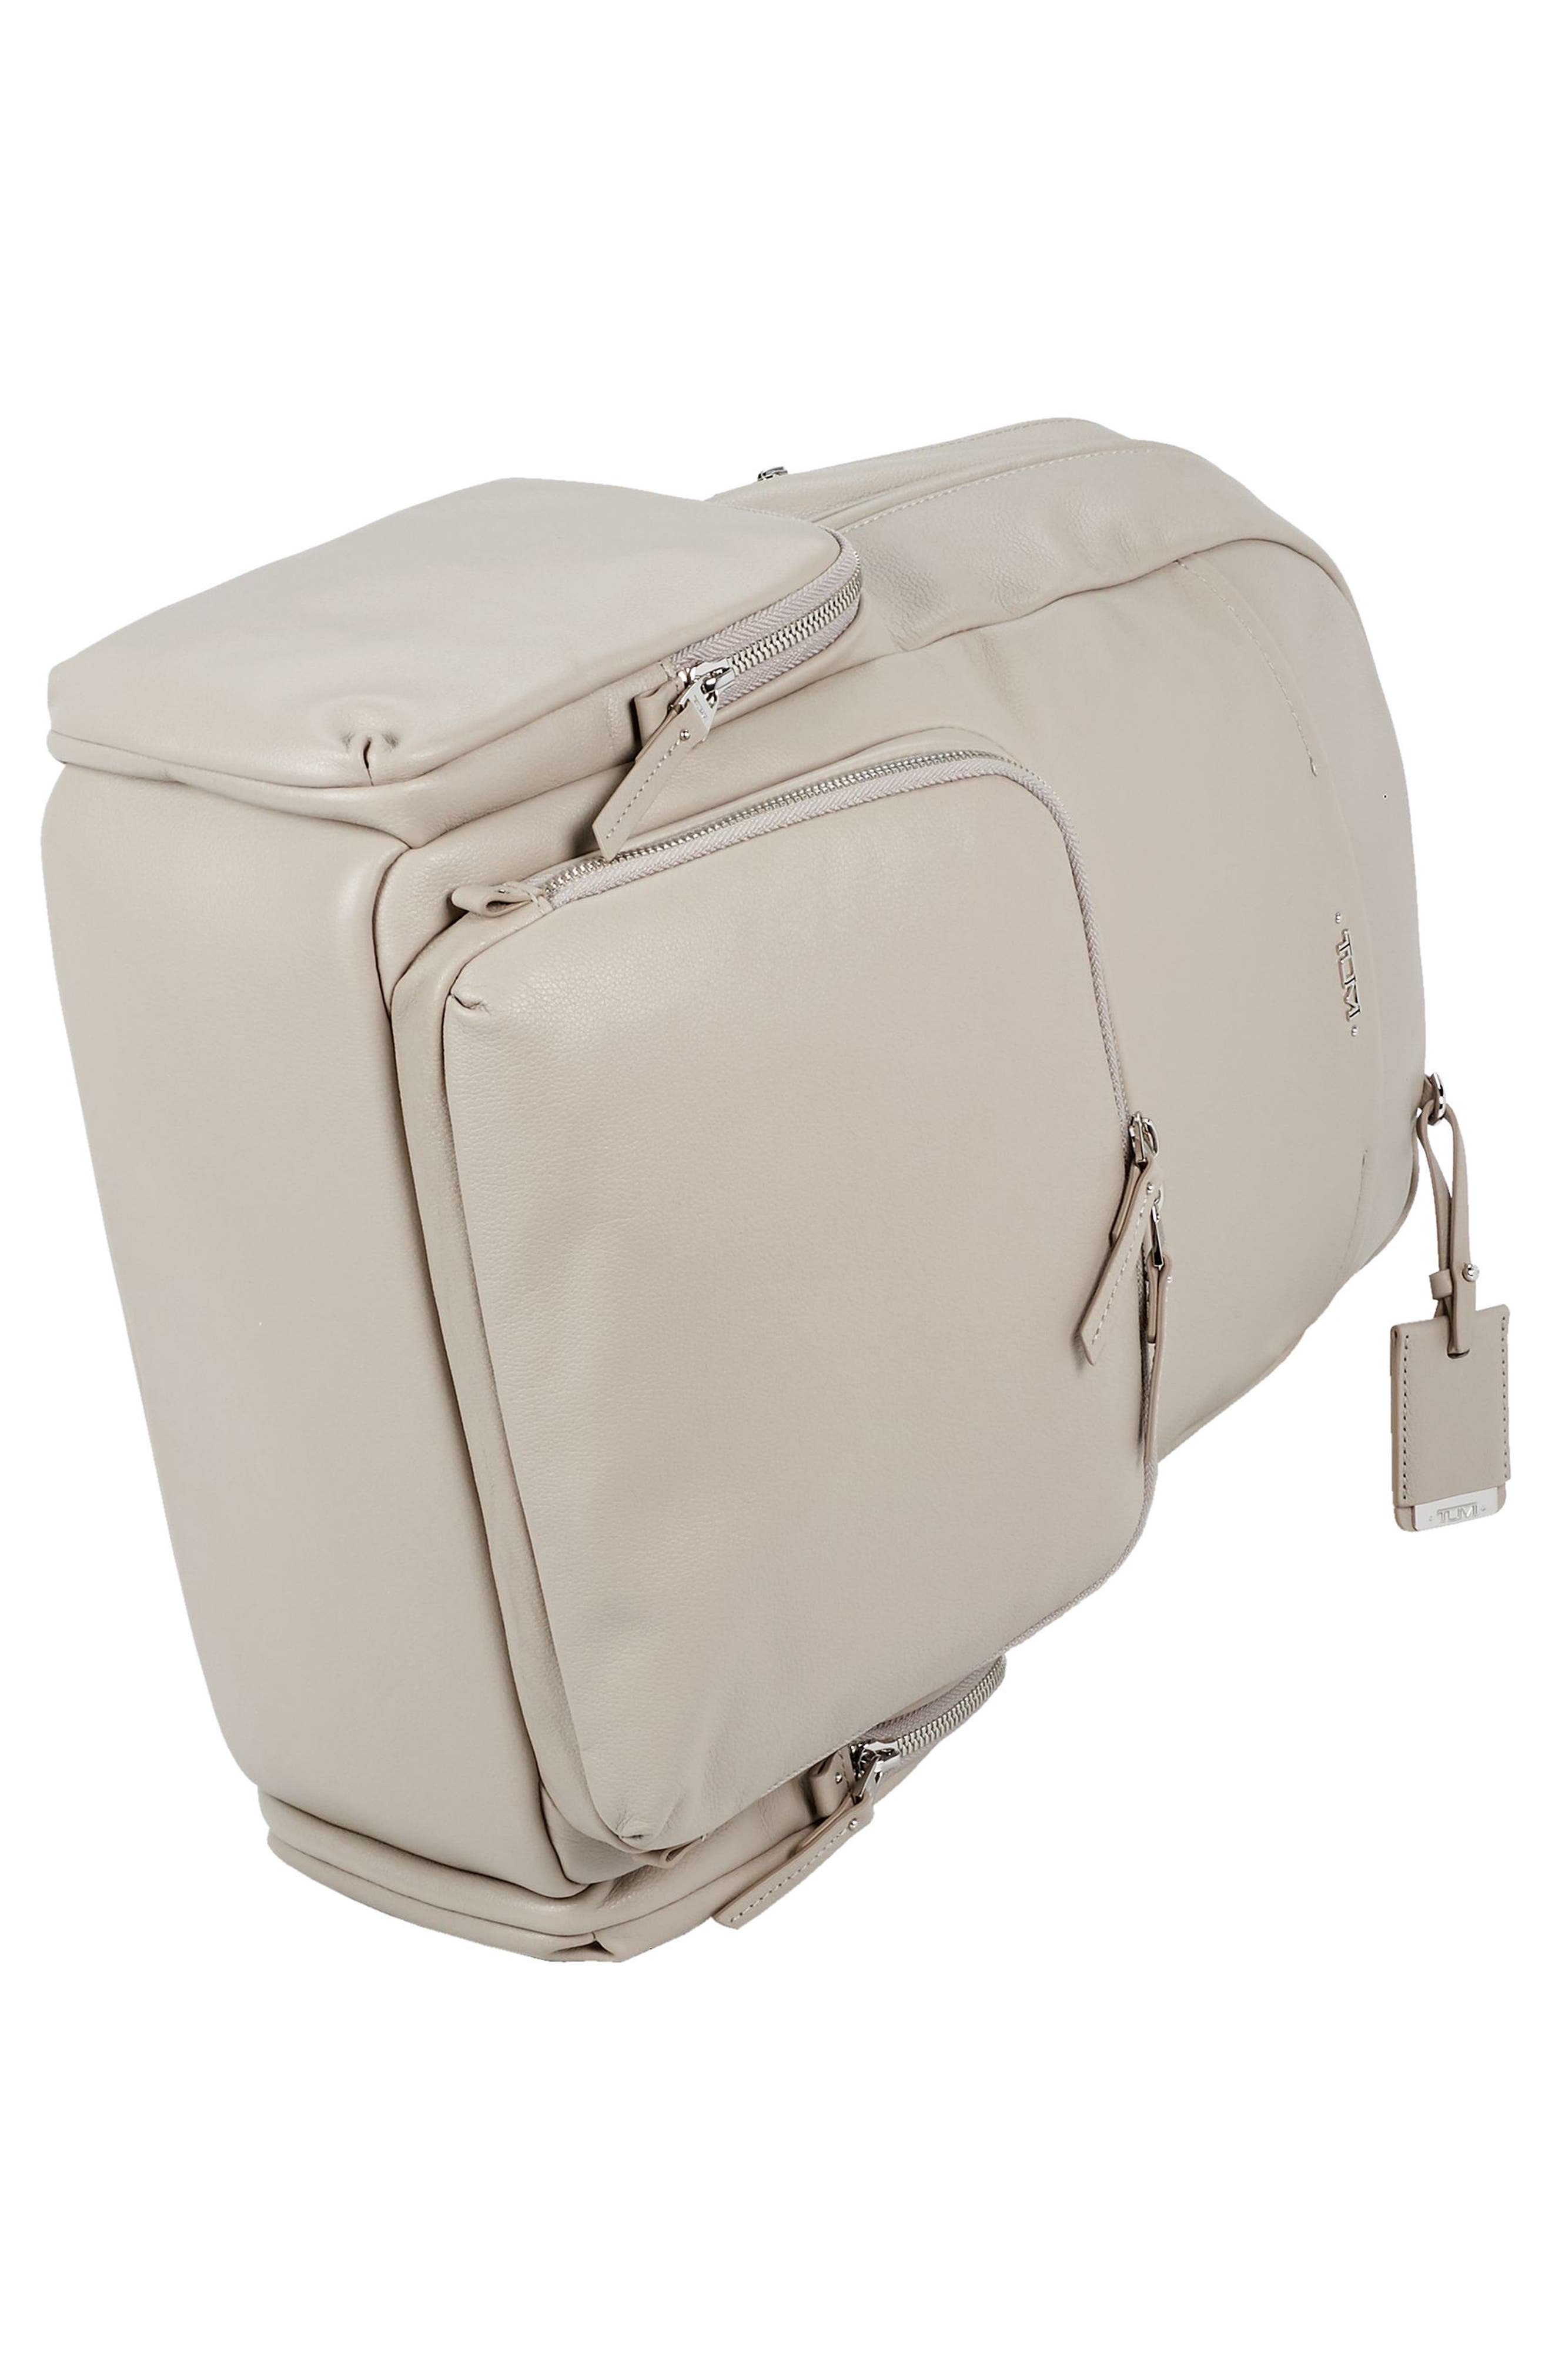 Calais Leather Computer Backpack,                             Alternate thumbnail 10, color,